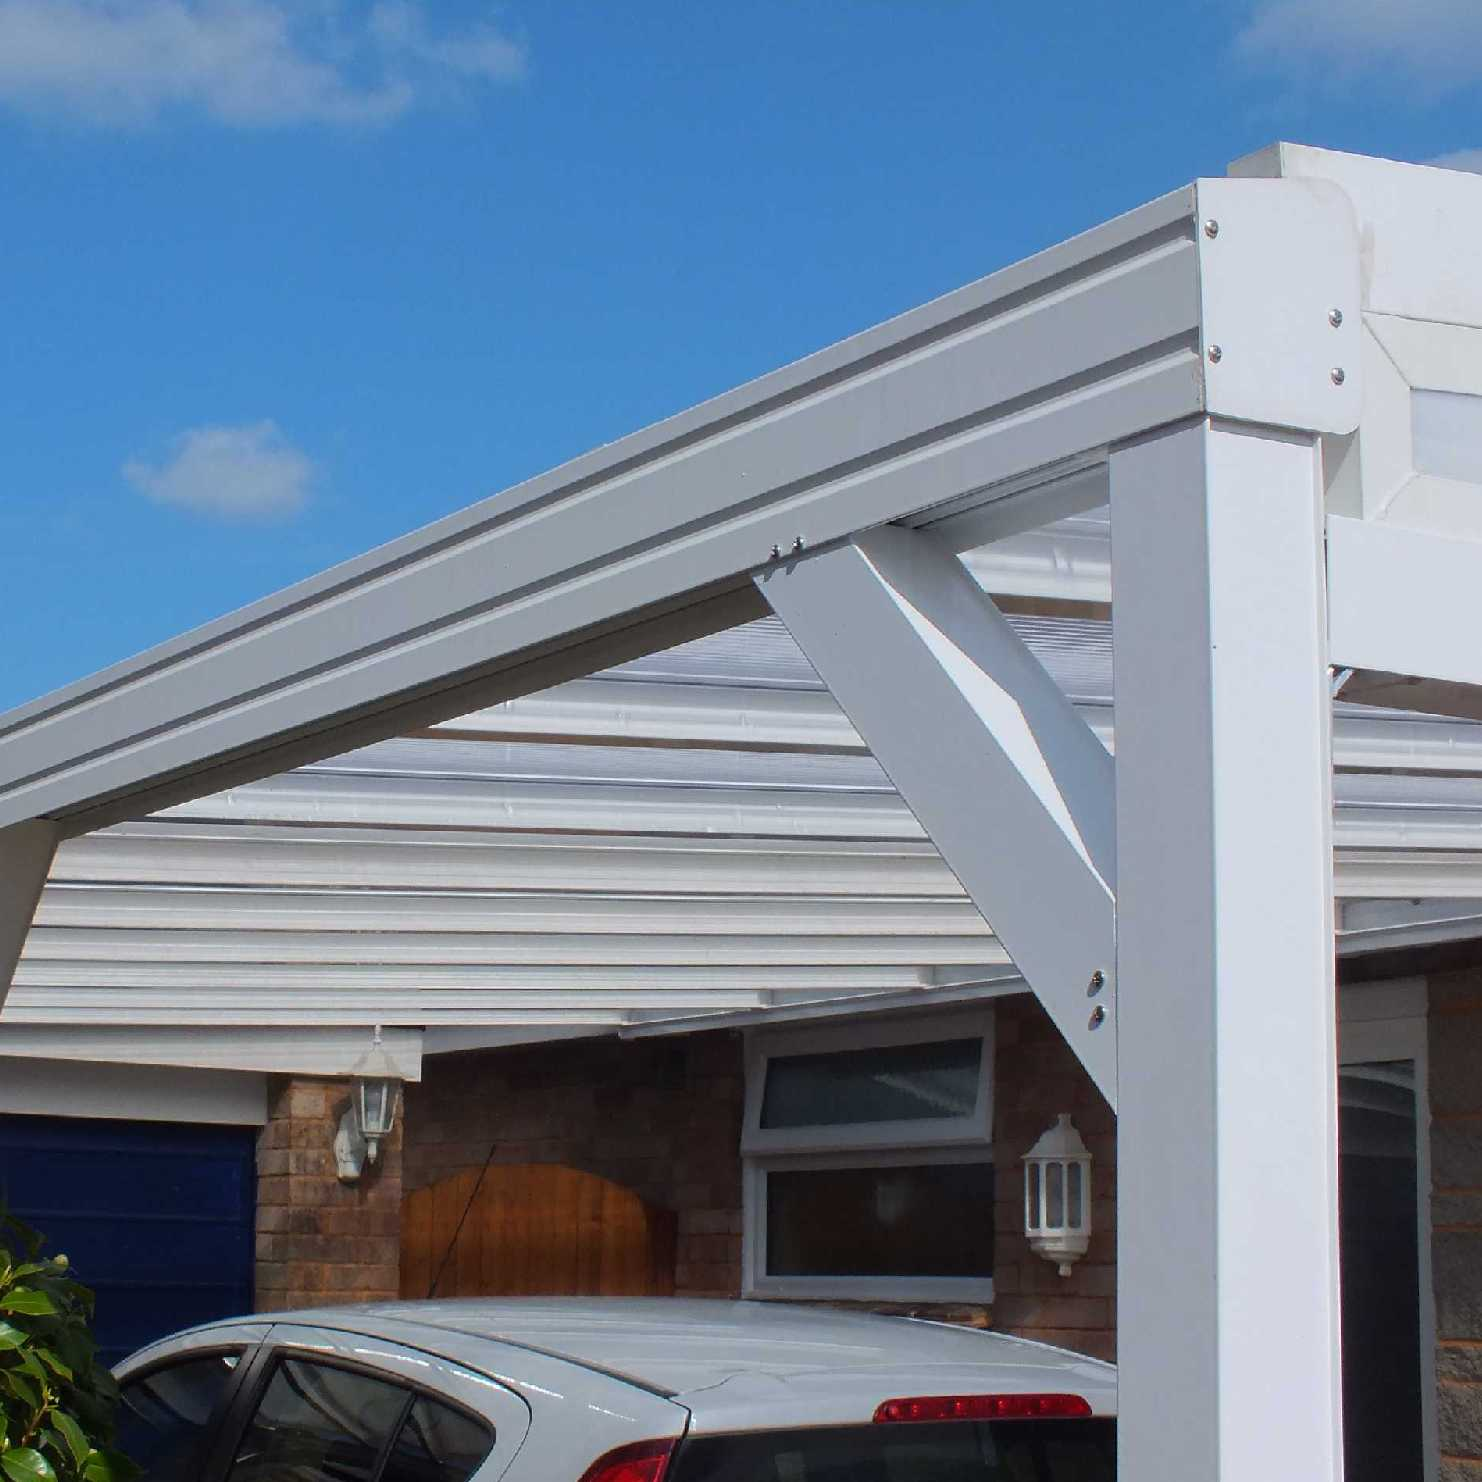 Great deals on Omega Smart White Lean-To Canopy with 16mm Polycarbonate Glazing - 4.2m (W) x 1.5m (P), (3) Supporting Posts